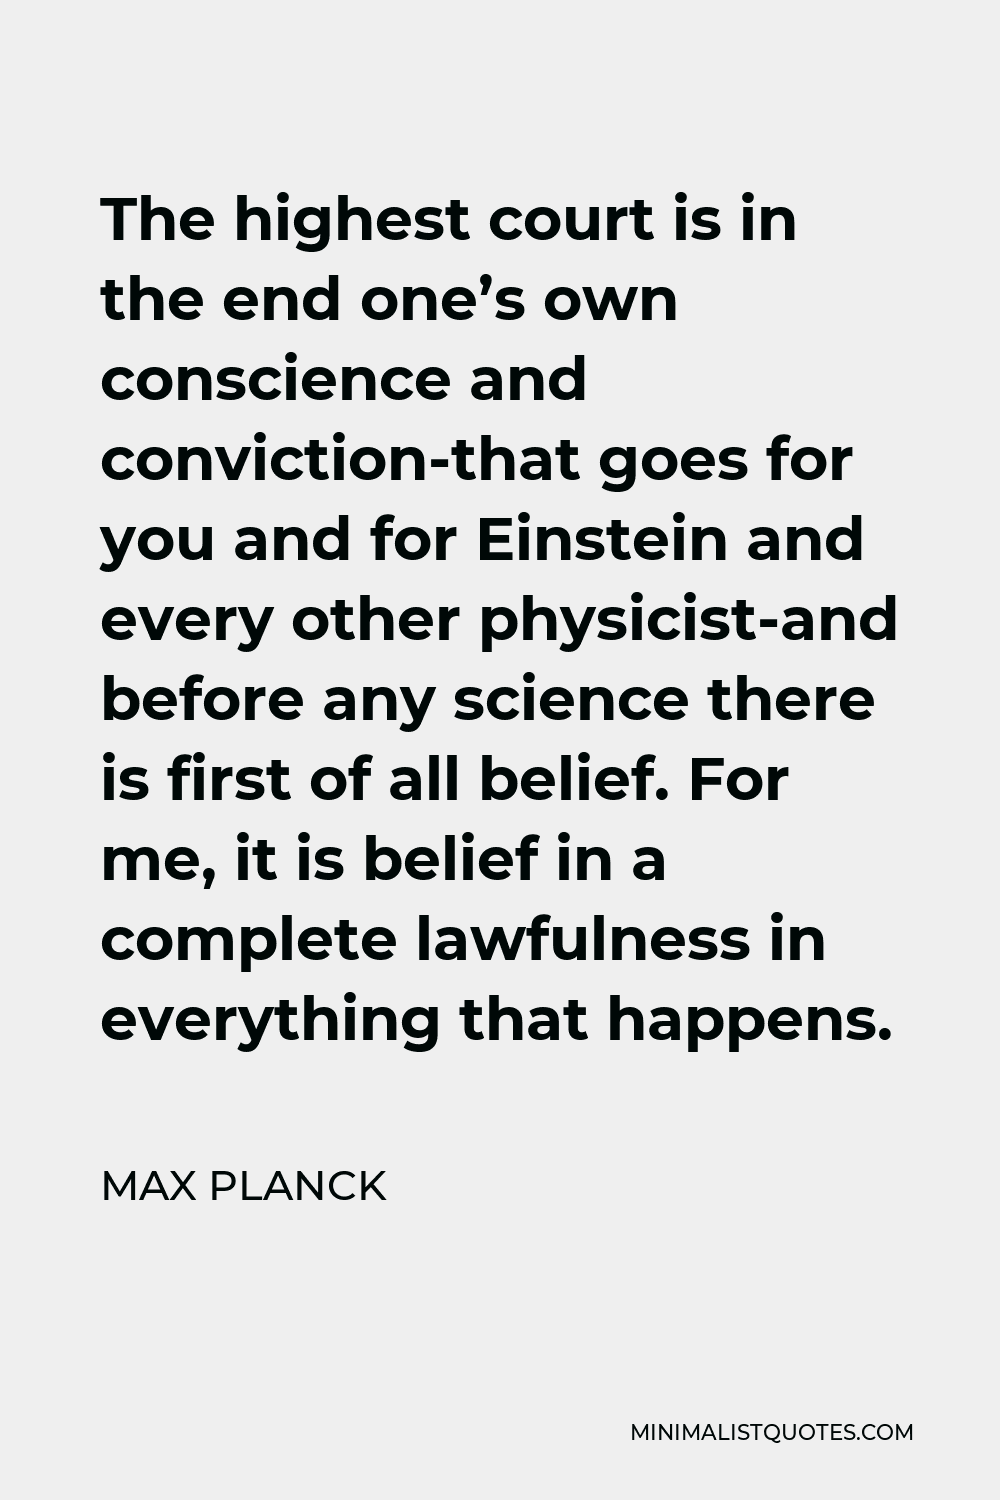 Max Planck Quote - The highest court is in the end one's own conscience and conviction-that goes for you and for Einstein and every other physicist-and before any science there is first of all belief. For me, it is belief in a complete lawfulness in everything that happens.